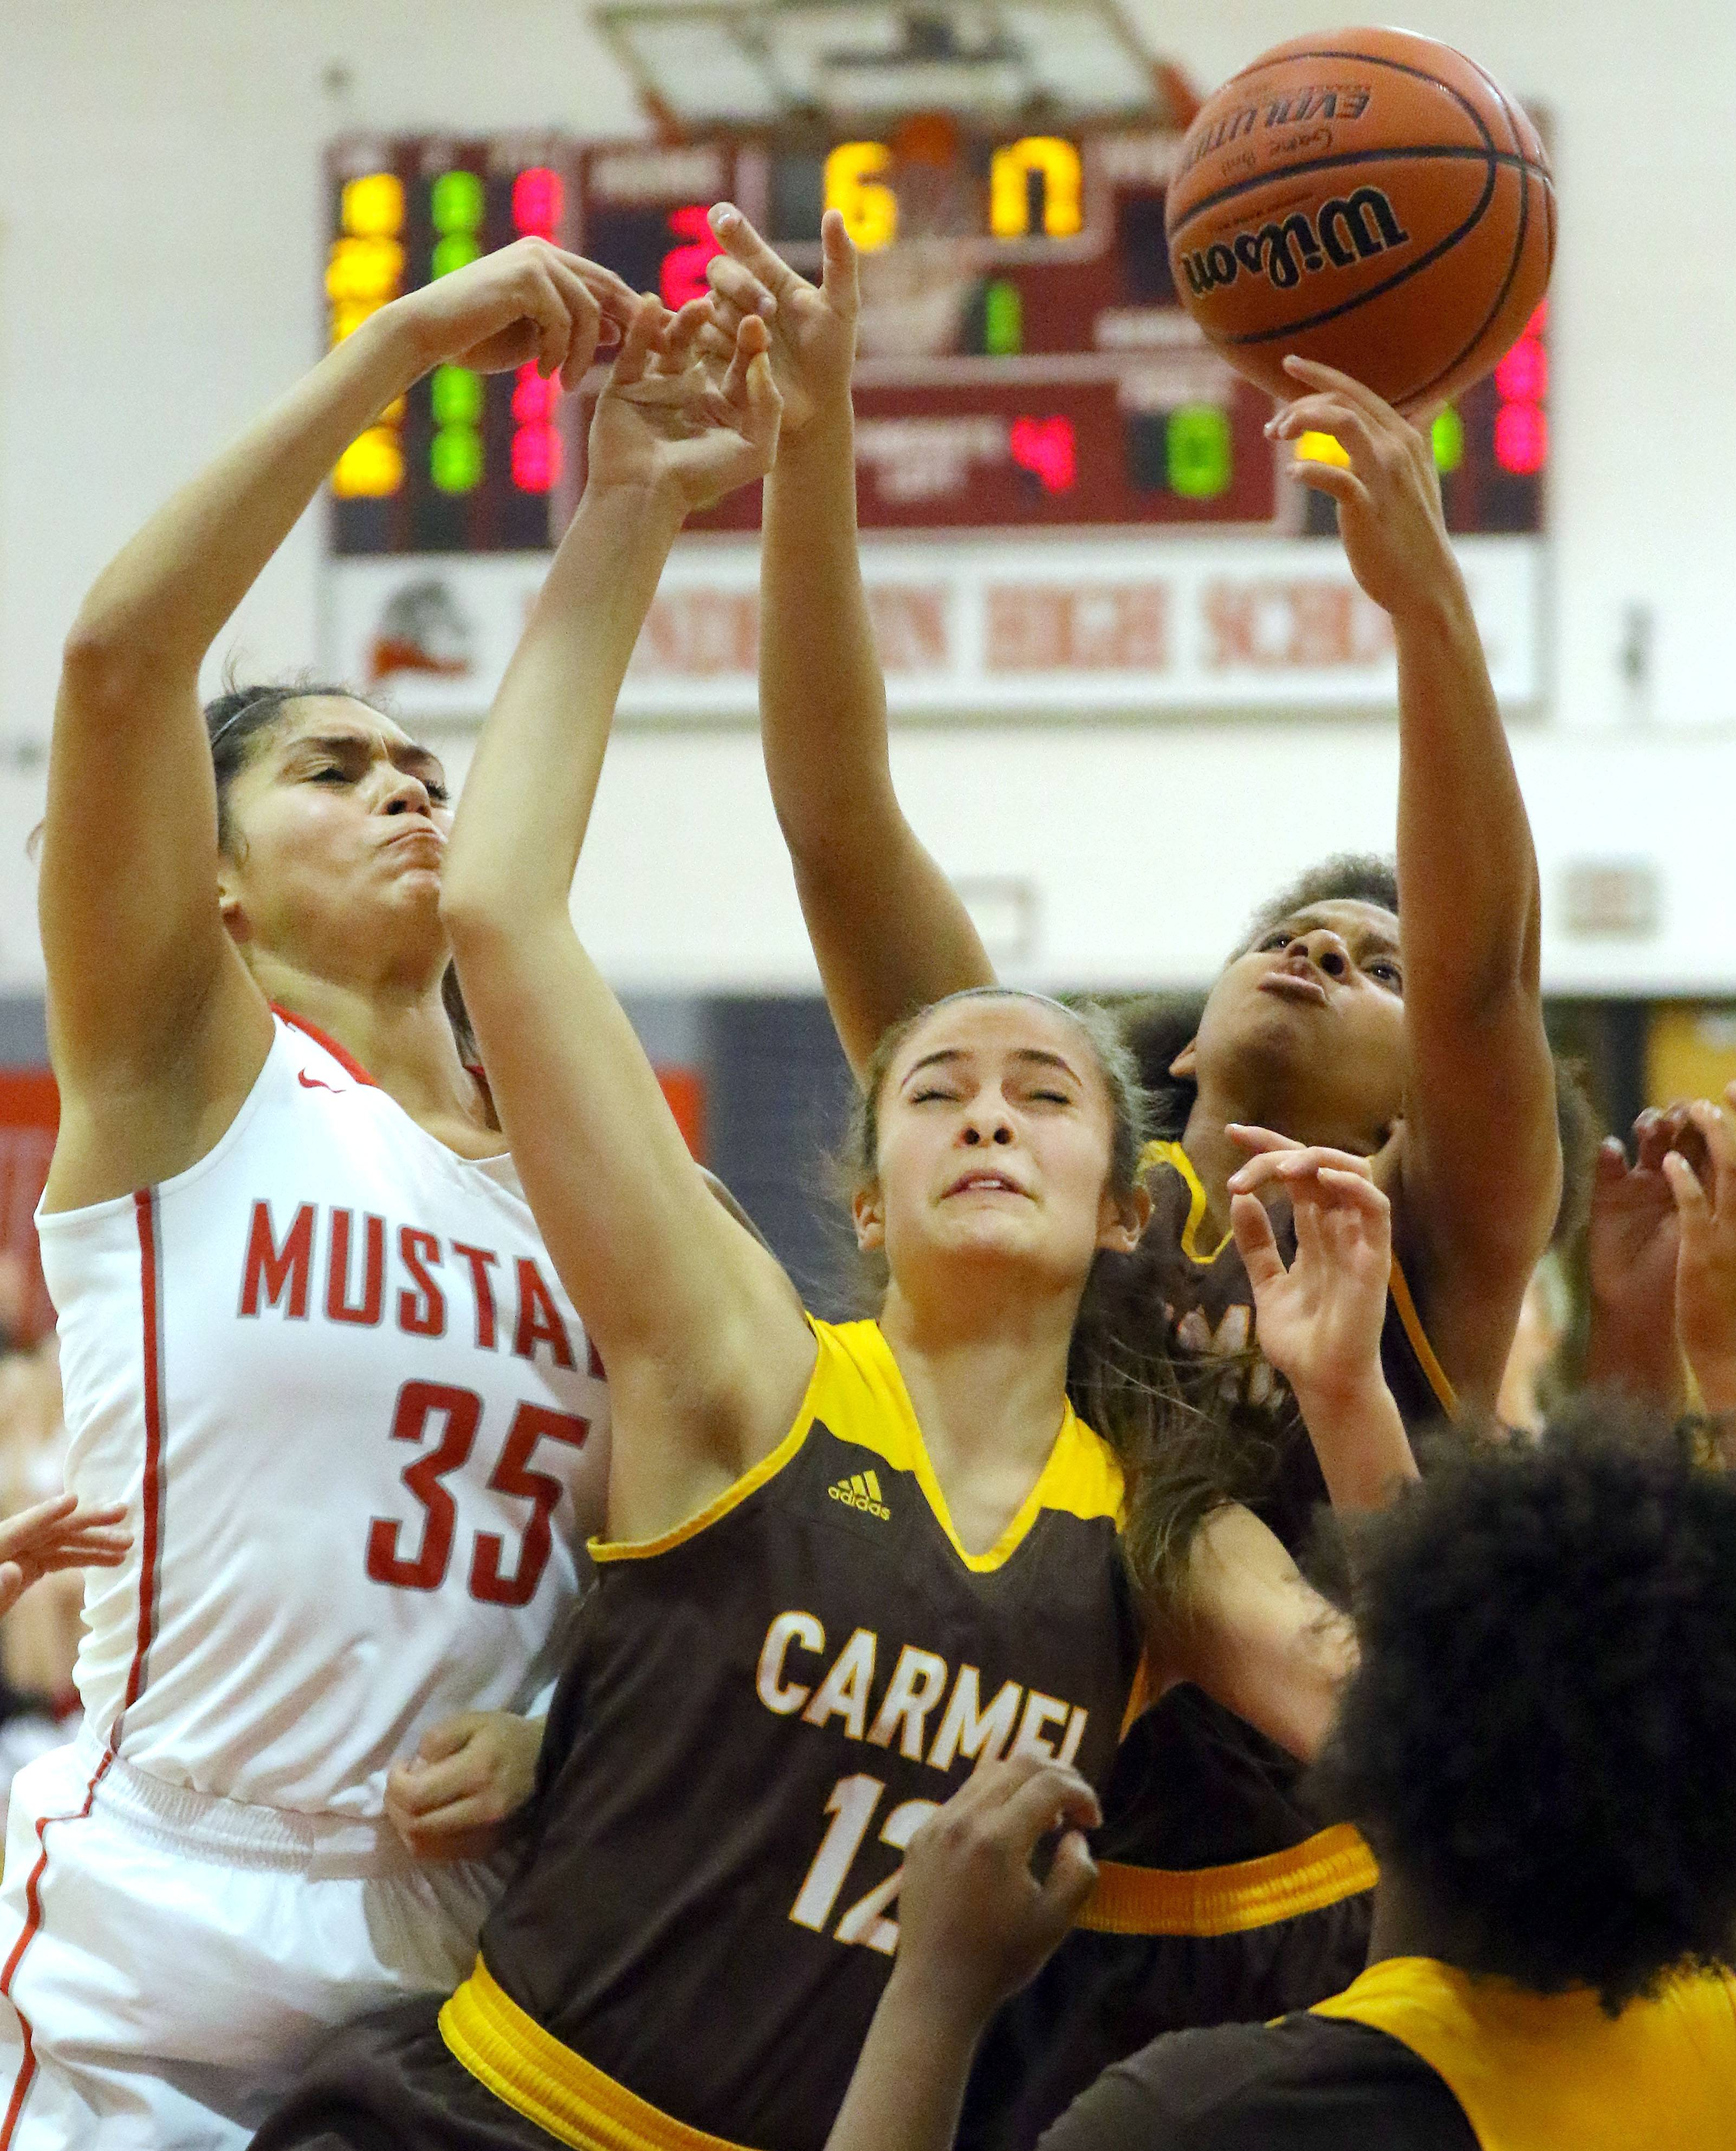 Mundelein's Ellie Maldonado (35) battles for a rebound with Carmel's Kaytlyn Matz and Shai Horton on Tuesday.